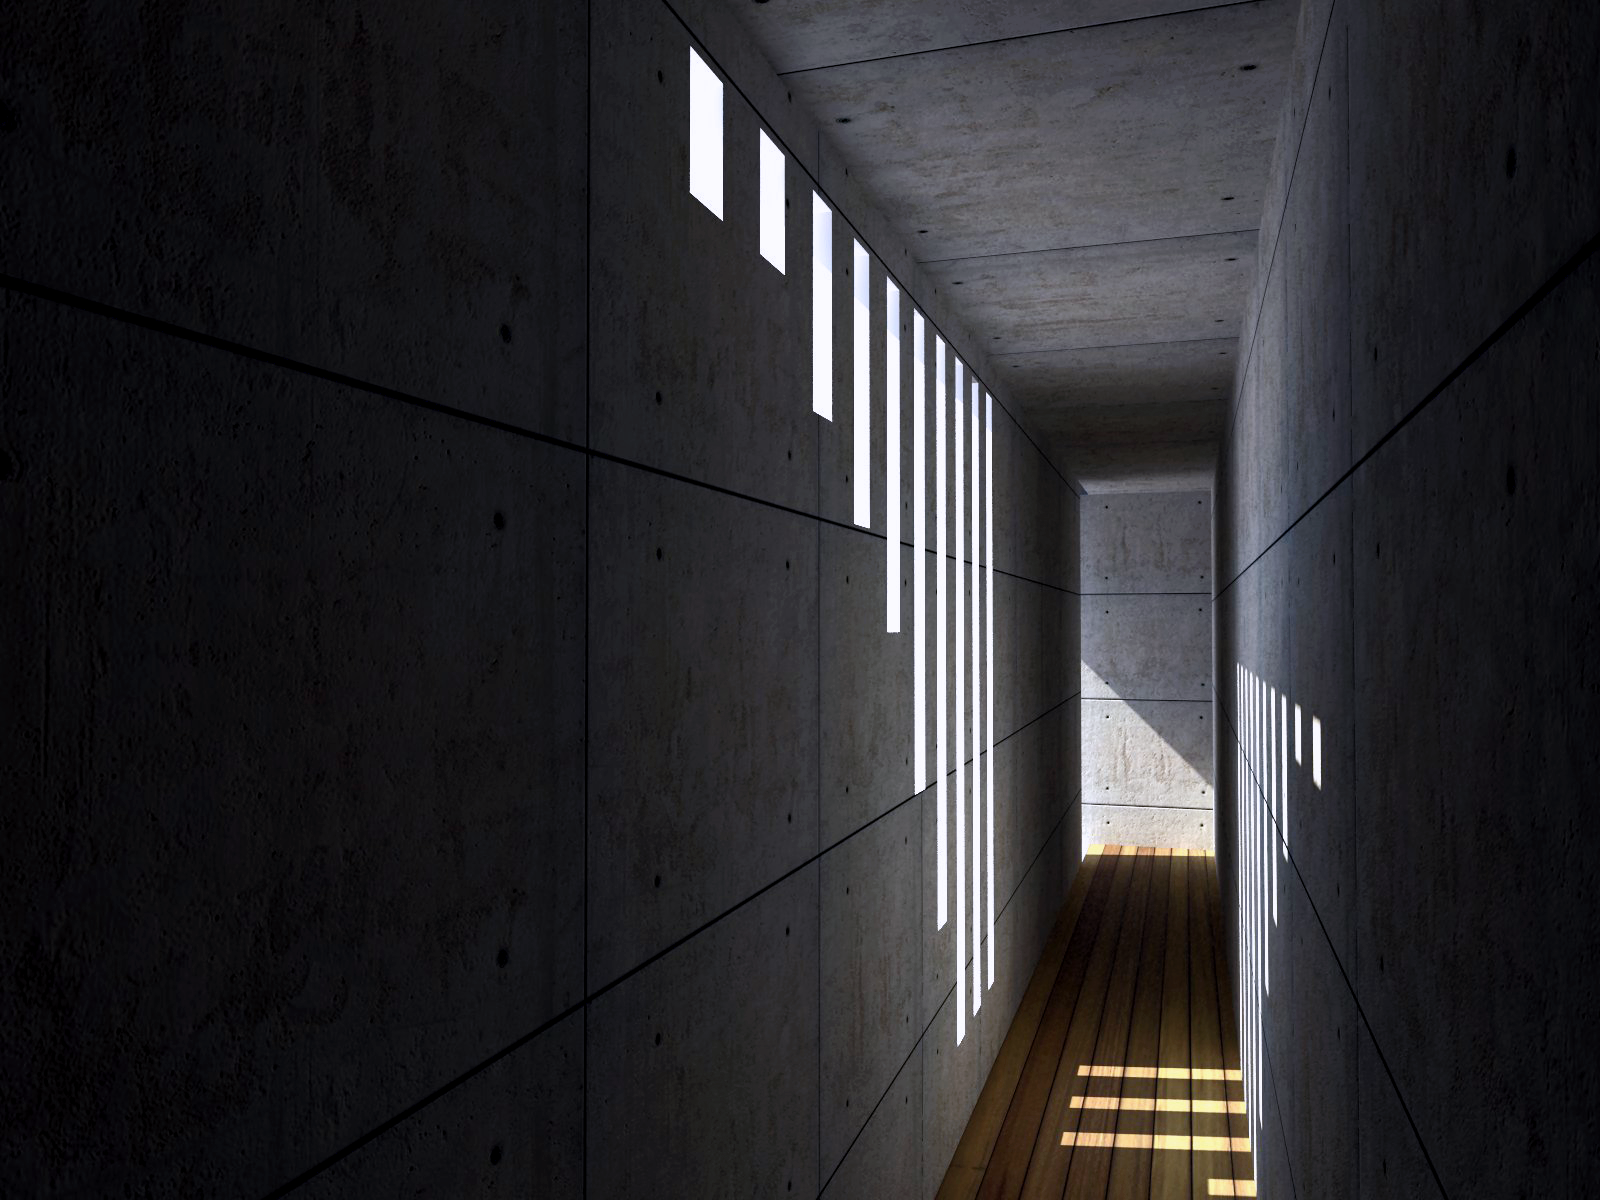 Ando tadao rokko house pinterest - Architectureal Visualization Of Koshino House By Tadao Ando